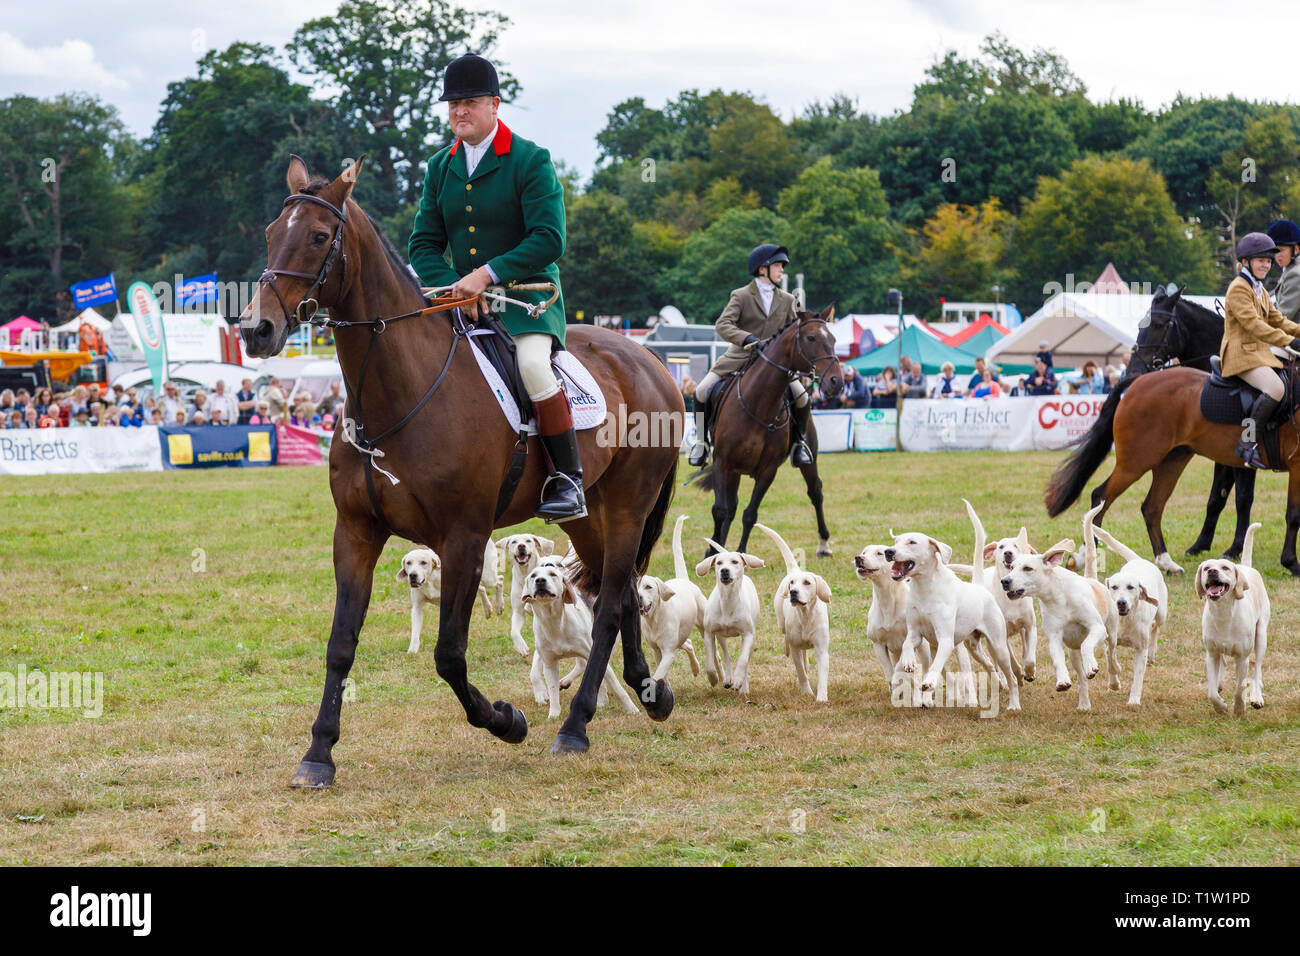 A demonstration by the North Norfolk Harriers at the 2018 Aylsham Agricultural Show, Norfolk, UK. Stock Photo